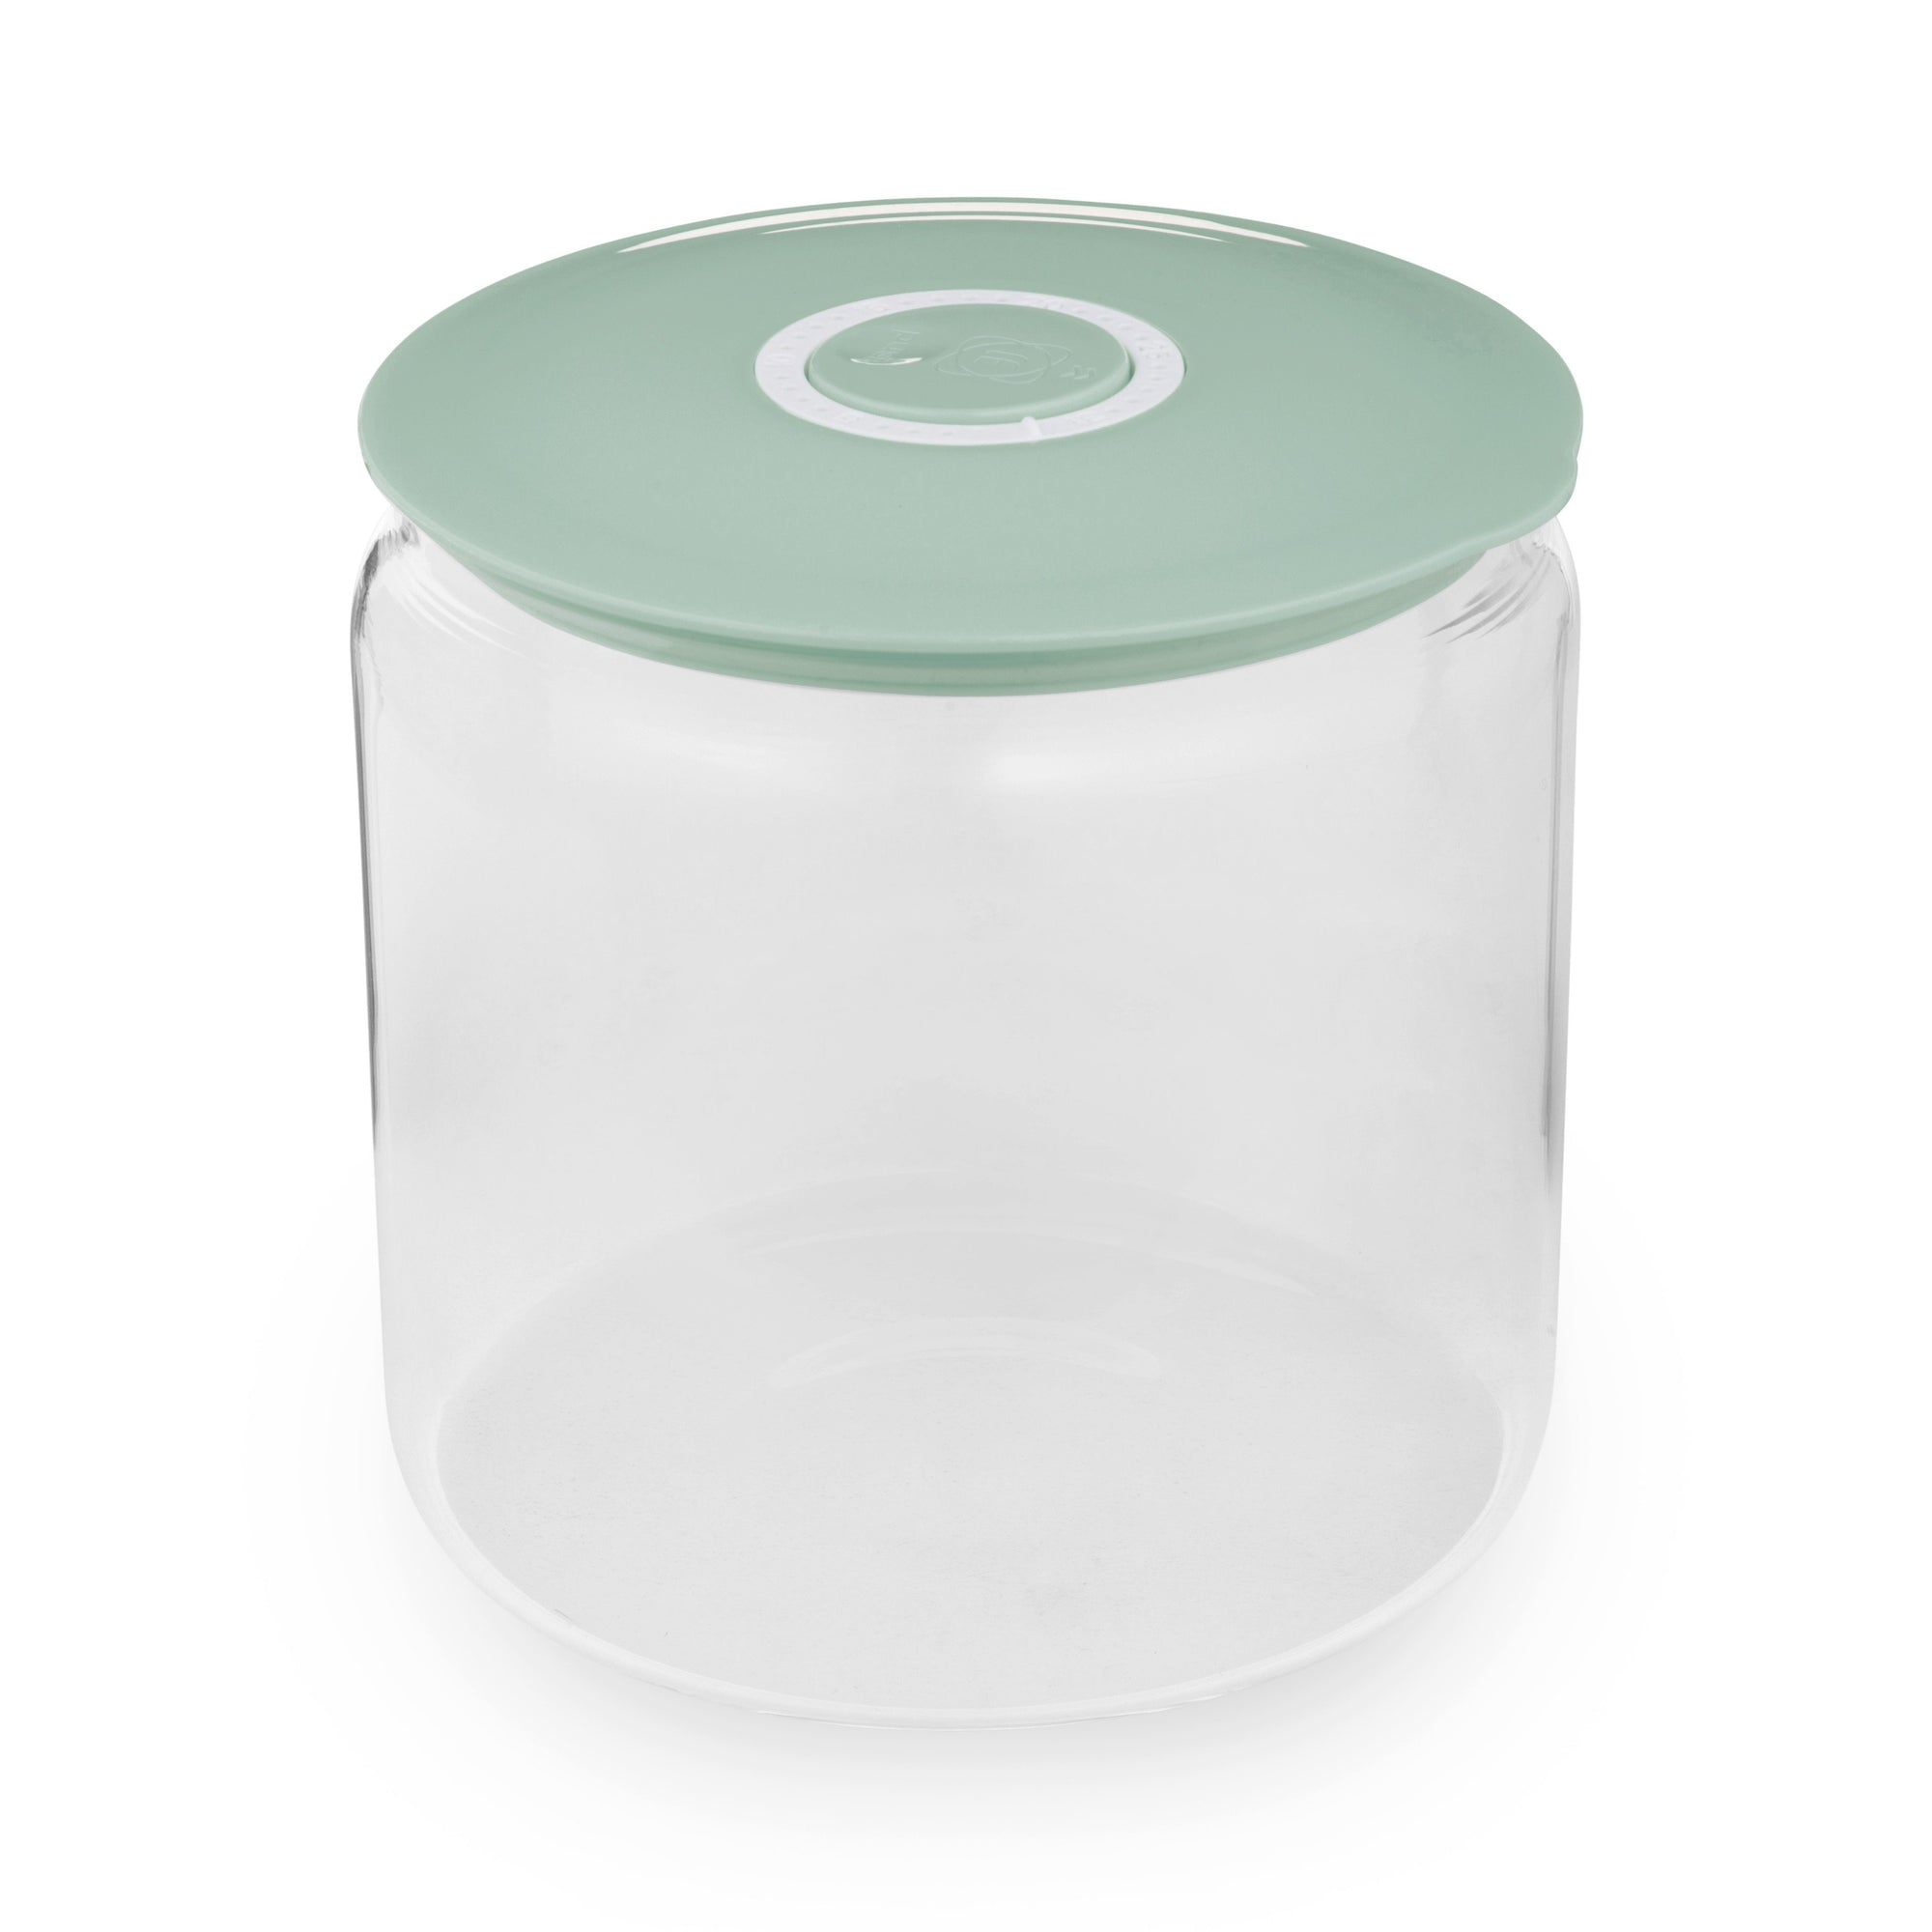 Luvele, Luvele 2 Litre Glass Yogurt Container | Compatible with Pure Plus Yogurt Maker,Yoghurt Makers